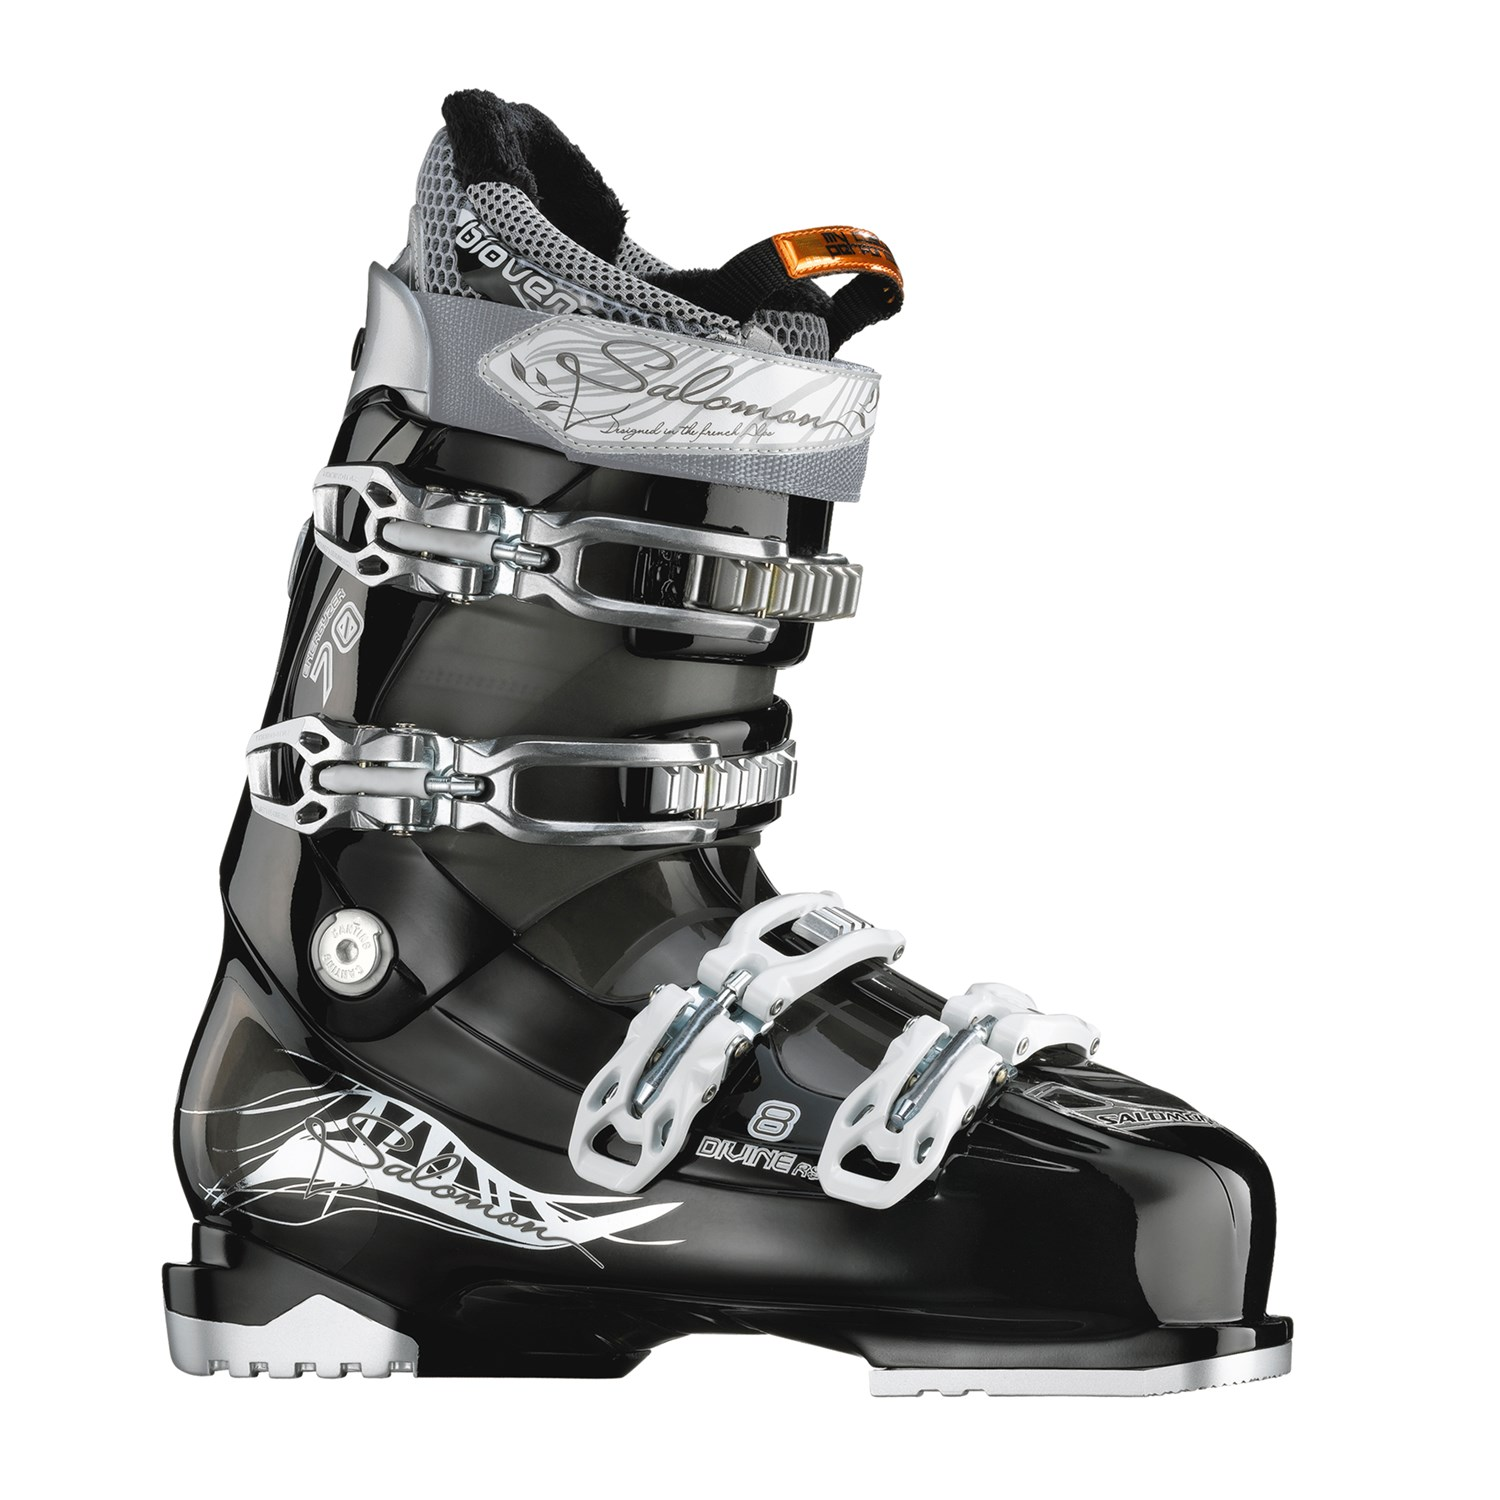 Salomon Divine RS 8 Ski Boots Women's 2010 | evo